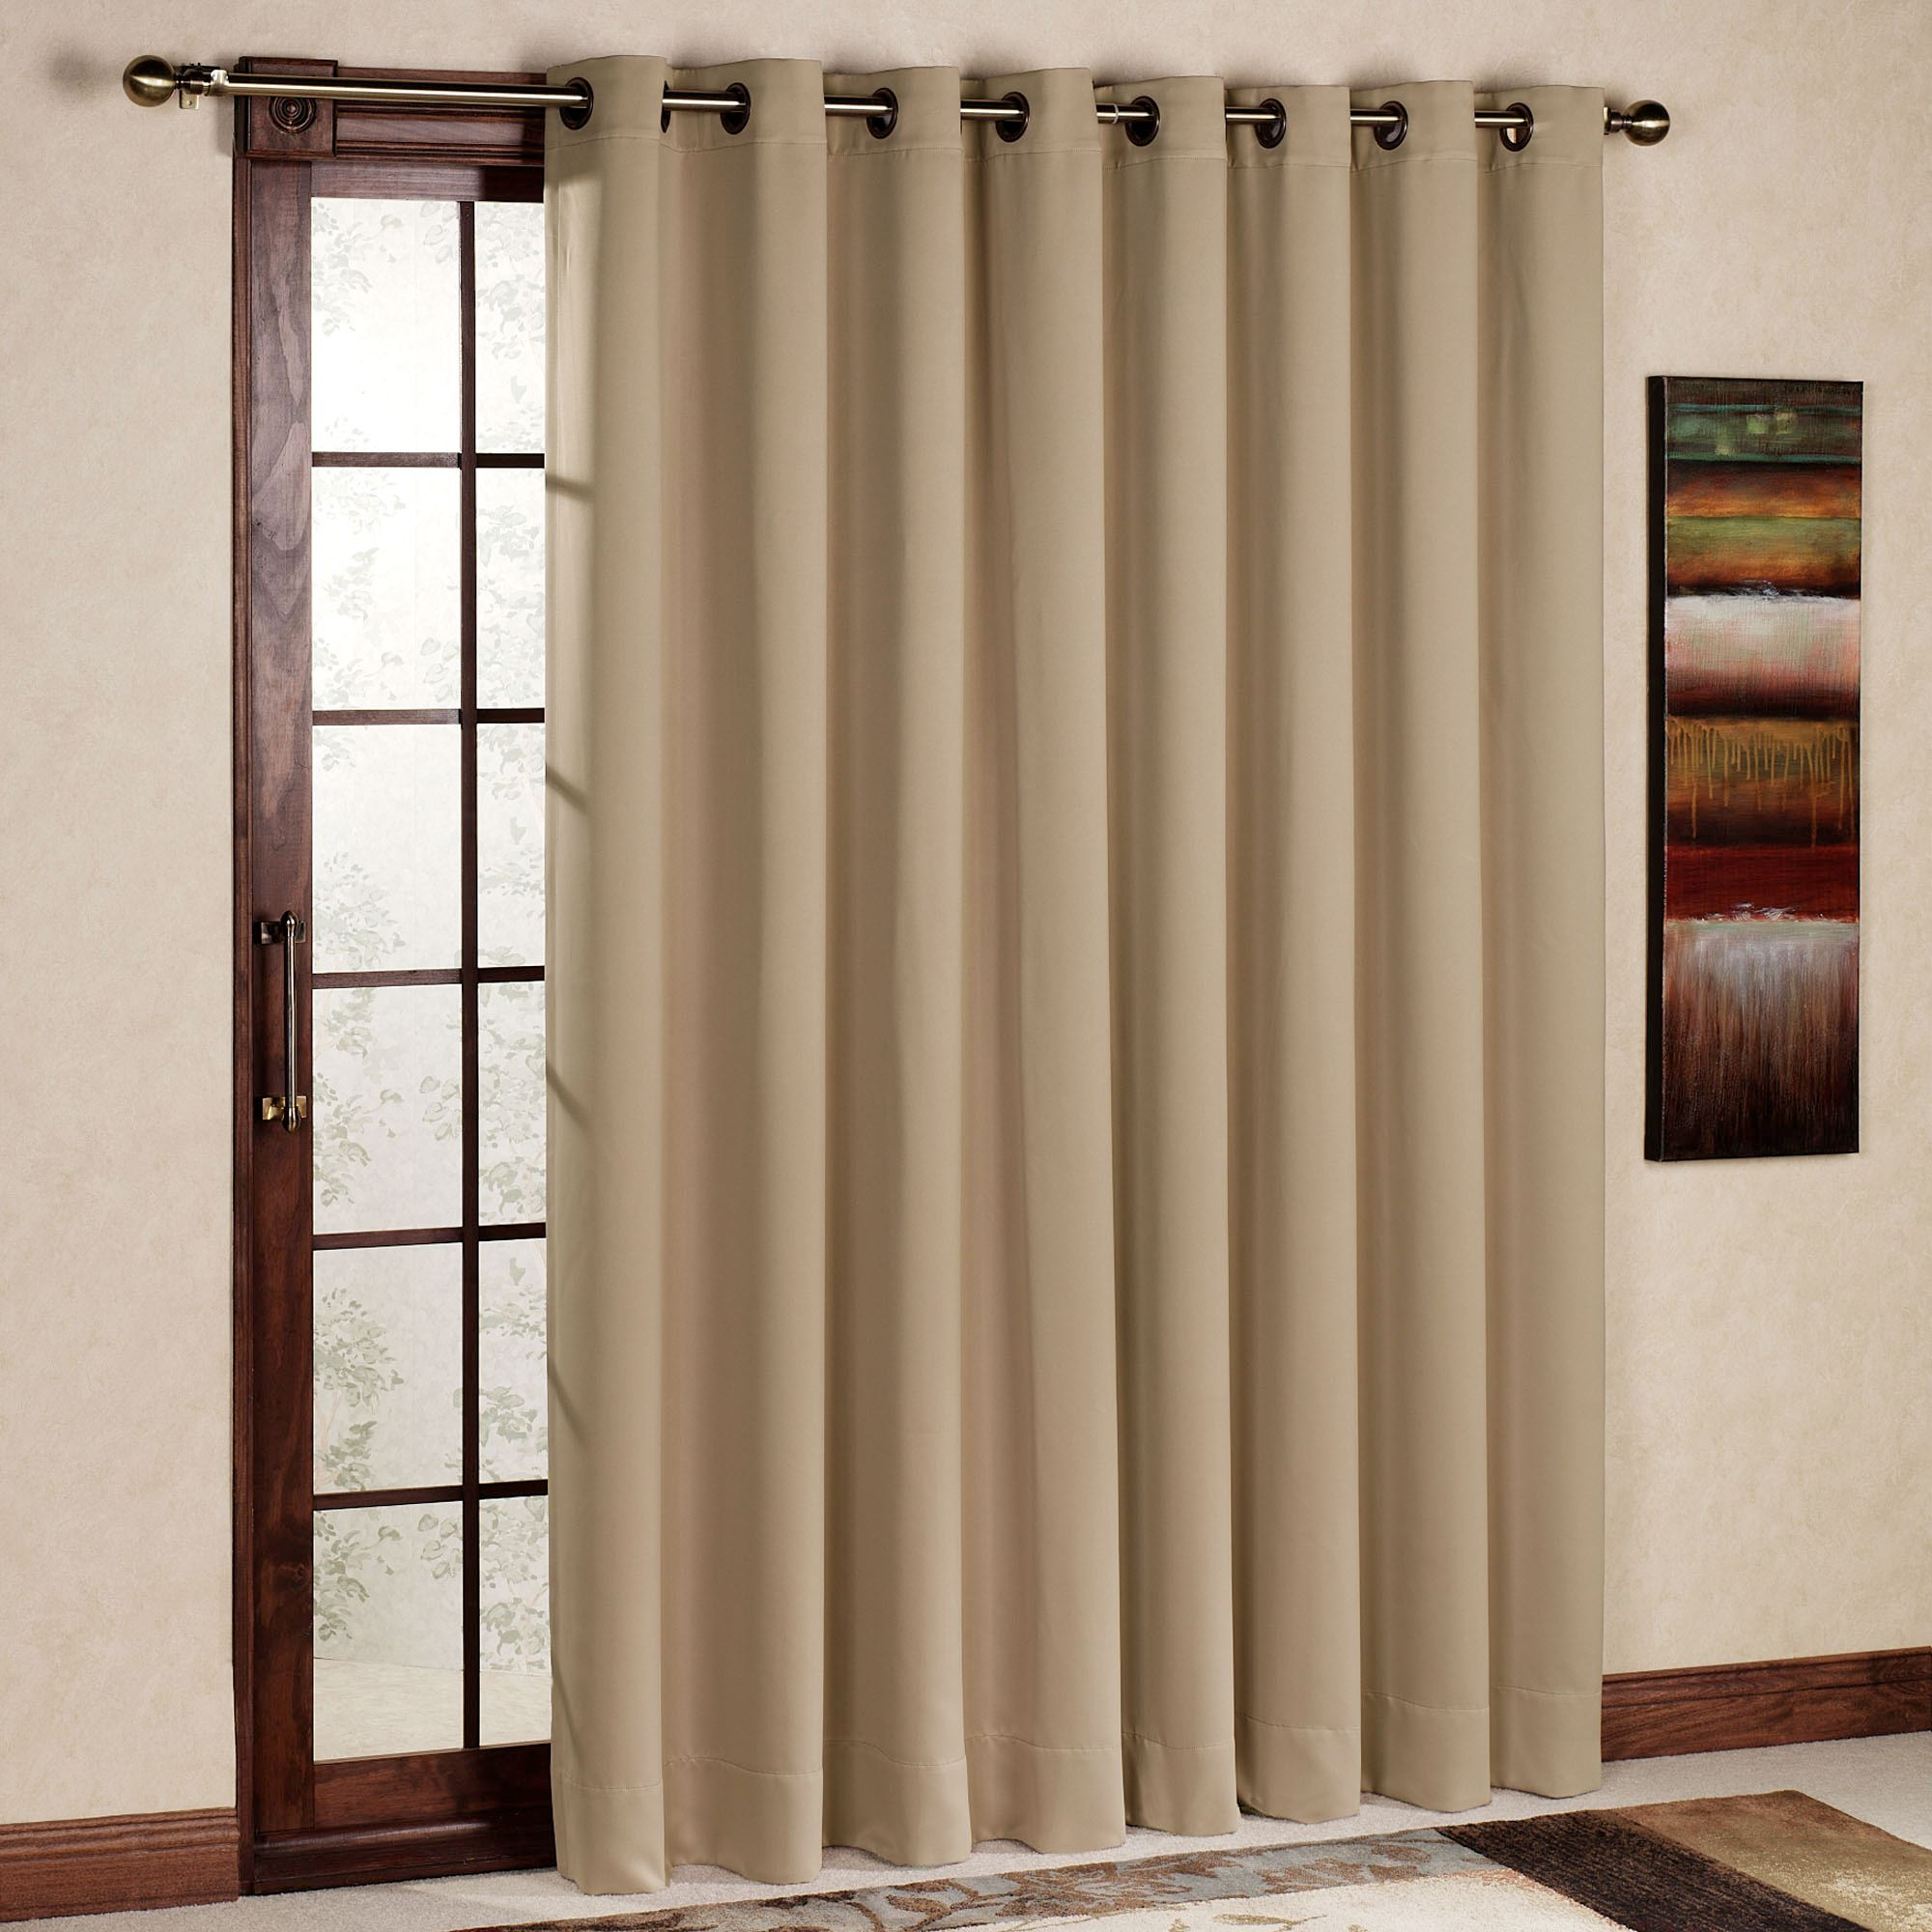 window drapes ultimate blackout grommet patio panel RILTHGF